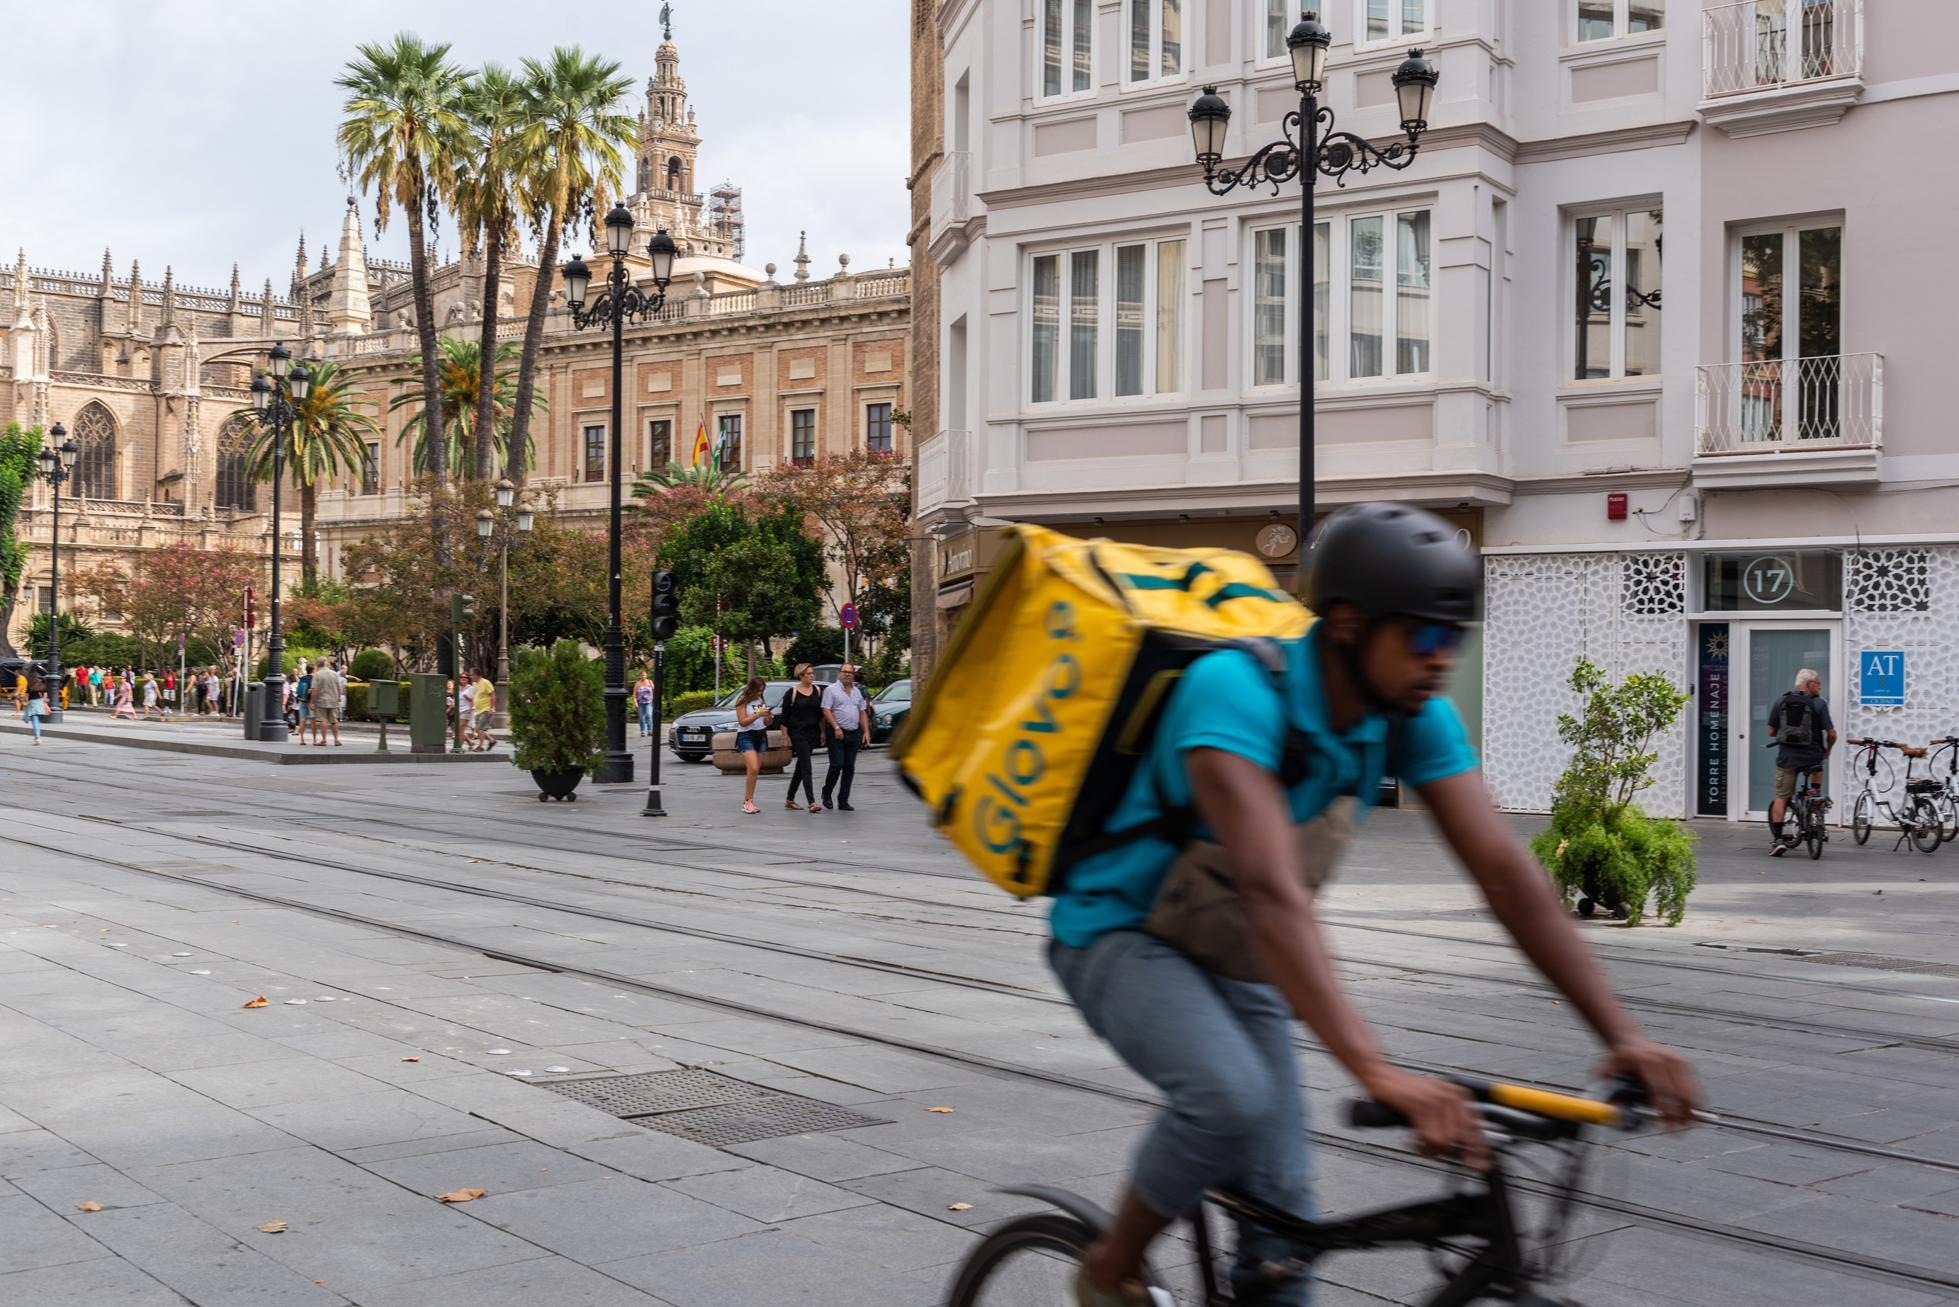 Glovo delivery man riding bicycle on the street...